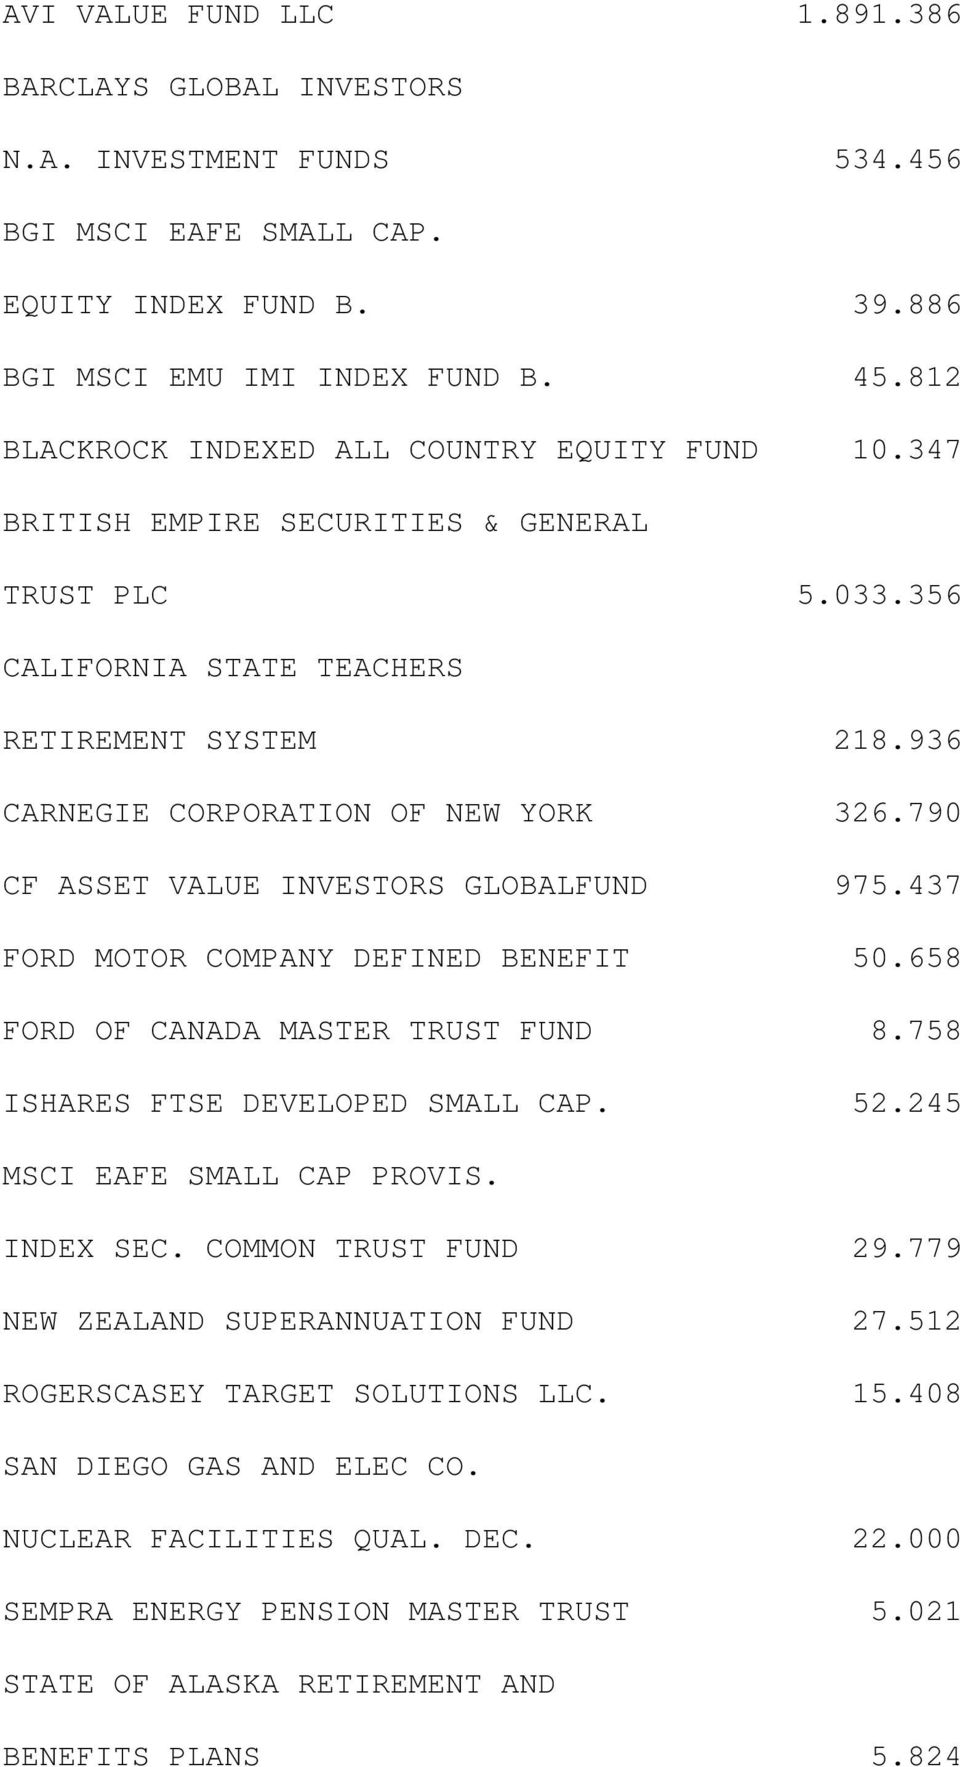 790 CF ASSET VALUE INVESTORS GLOBALFUND 975.437 FORD MOTOR COMPANY DEFINED BENEFIT 50.658 FORD OF CANADA MASTER TRUST FUND 8.758 ISHARES FTSE DEVELOPED SMALL CAP. 52.245 MSCI EAFE SMALL CAP PROVIS.